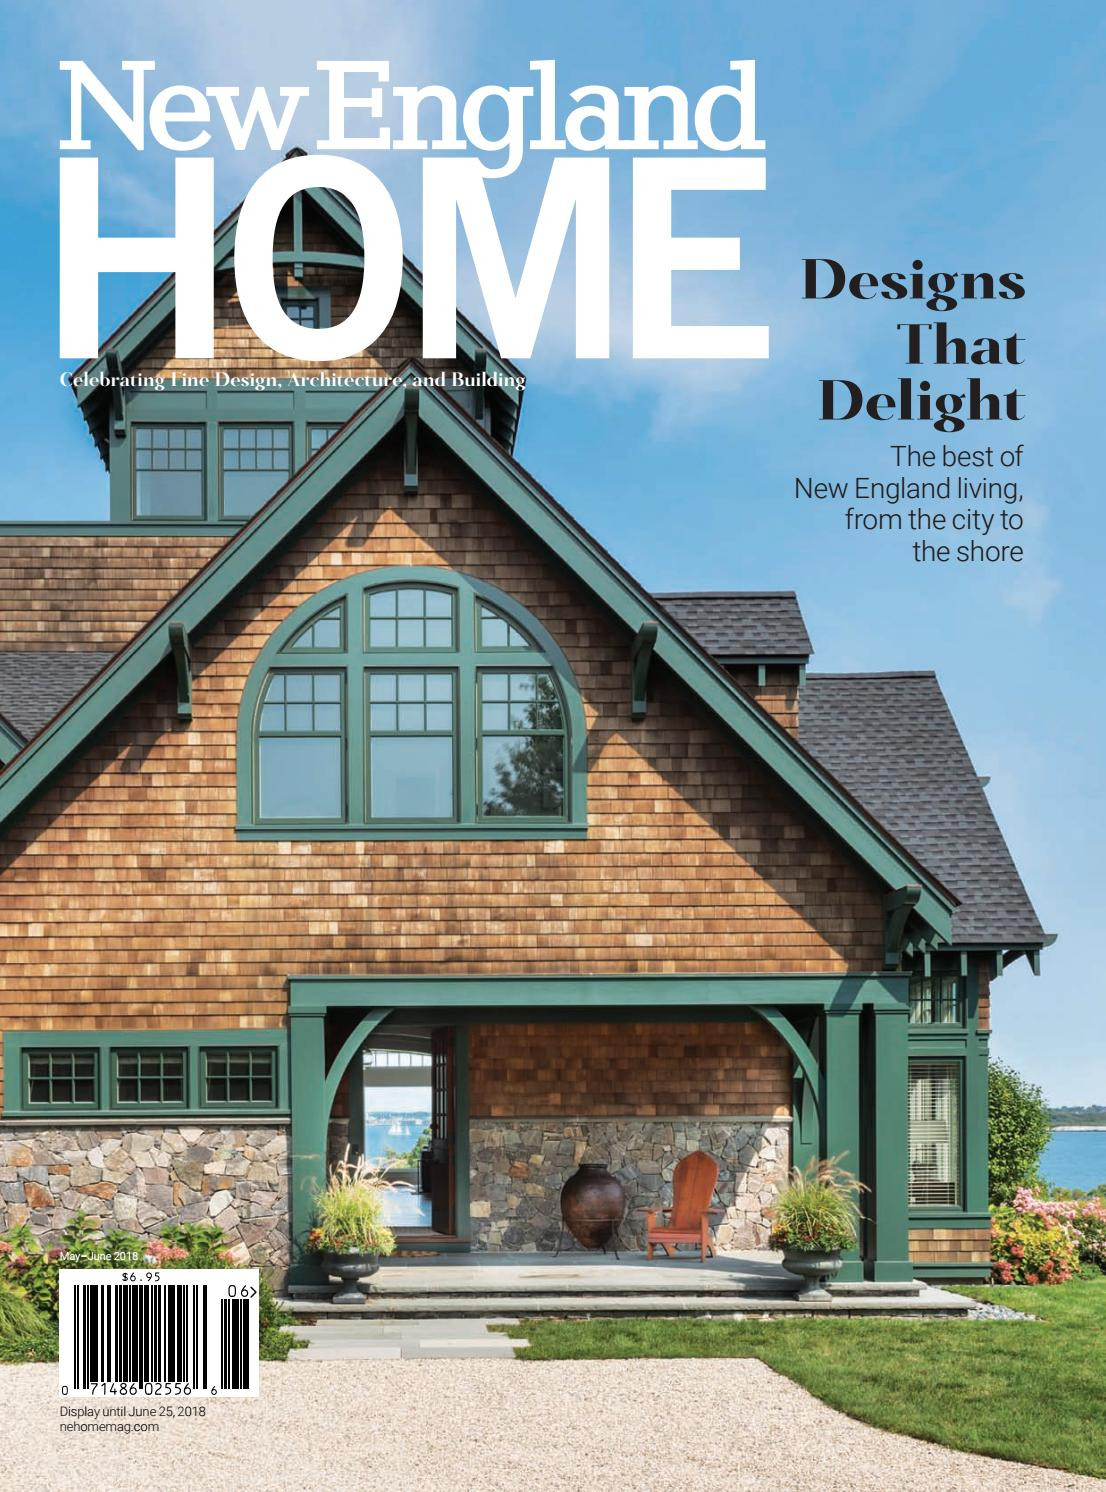 baccarat tornado crystal vase of new england home may june 2018 by new england home magazine llc in new england home may june 2018 by new england home magazine llc issuu